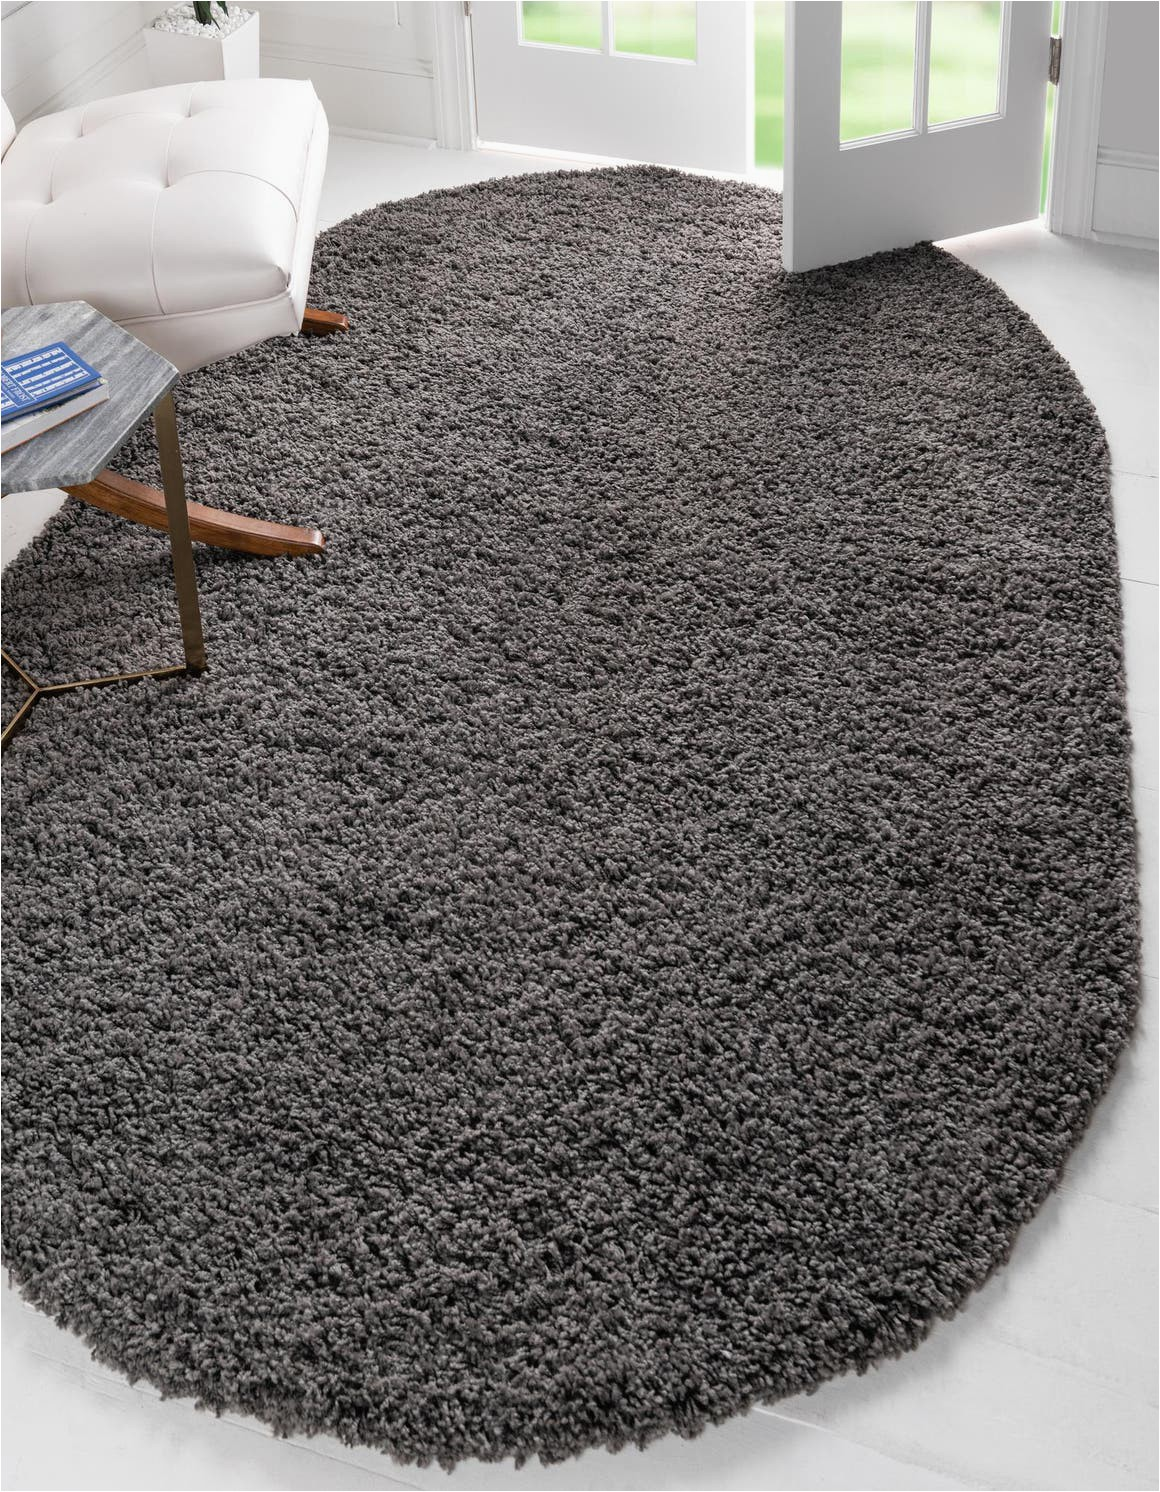 Solid Grey area Rug 8×10 Graphite Gray 8 X 10 solid Shag Oval Rug